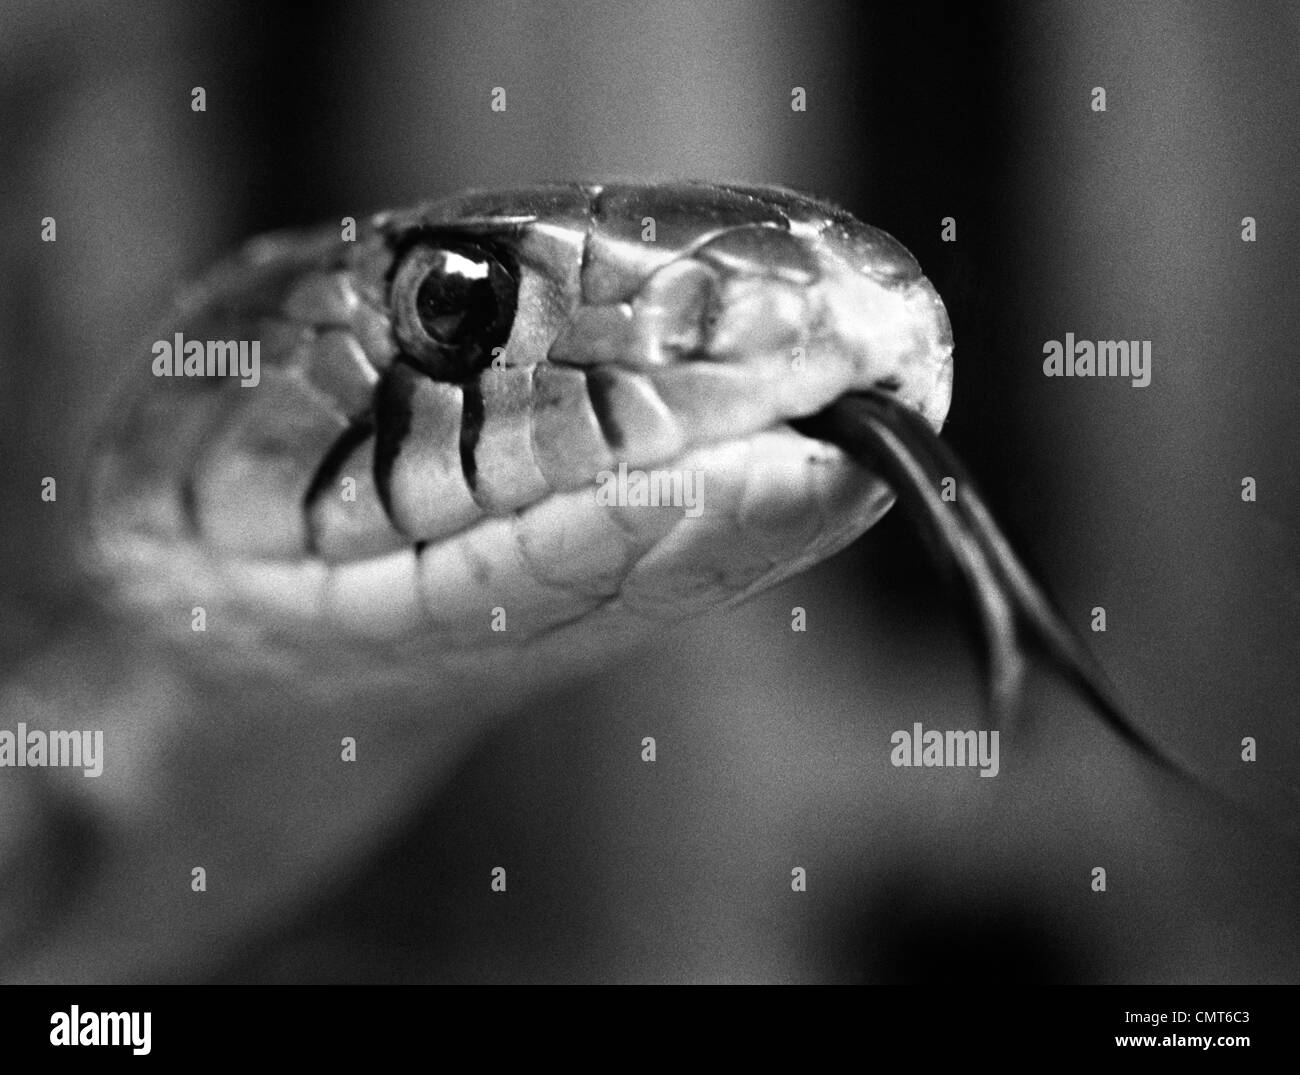 1960s CLOSE-UP HEAD OF SNAKE STICKING OUT TONGUE - Stock Image